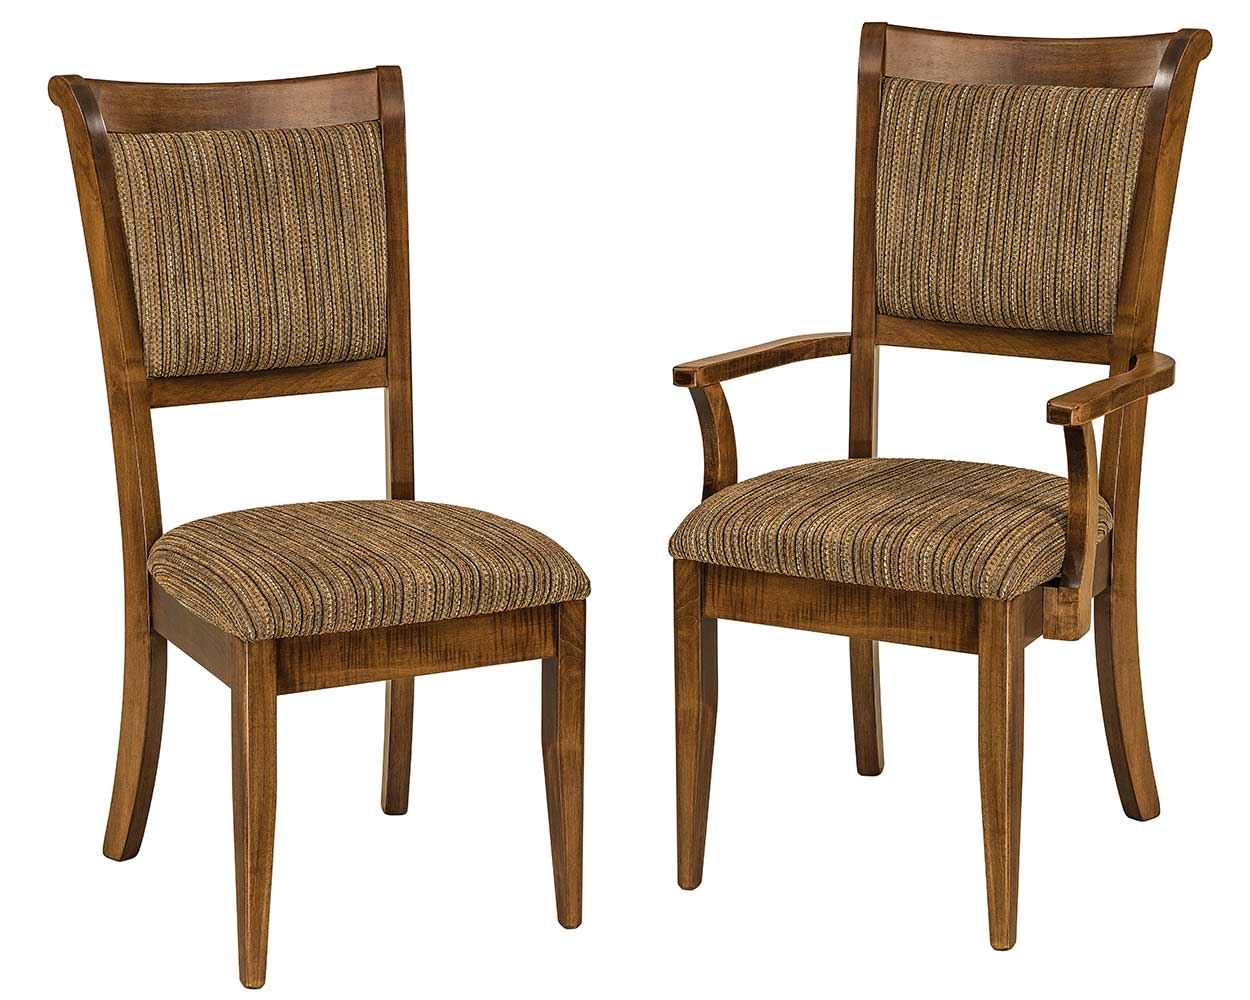 Adair Upholstered Dining Chairs